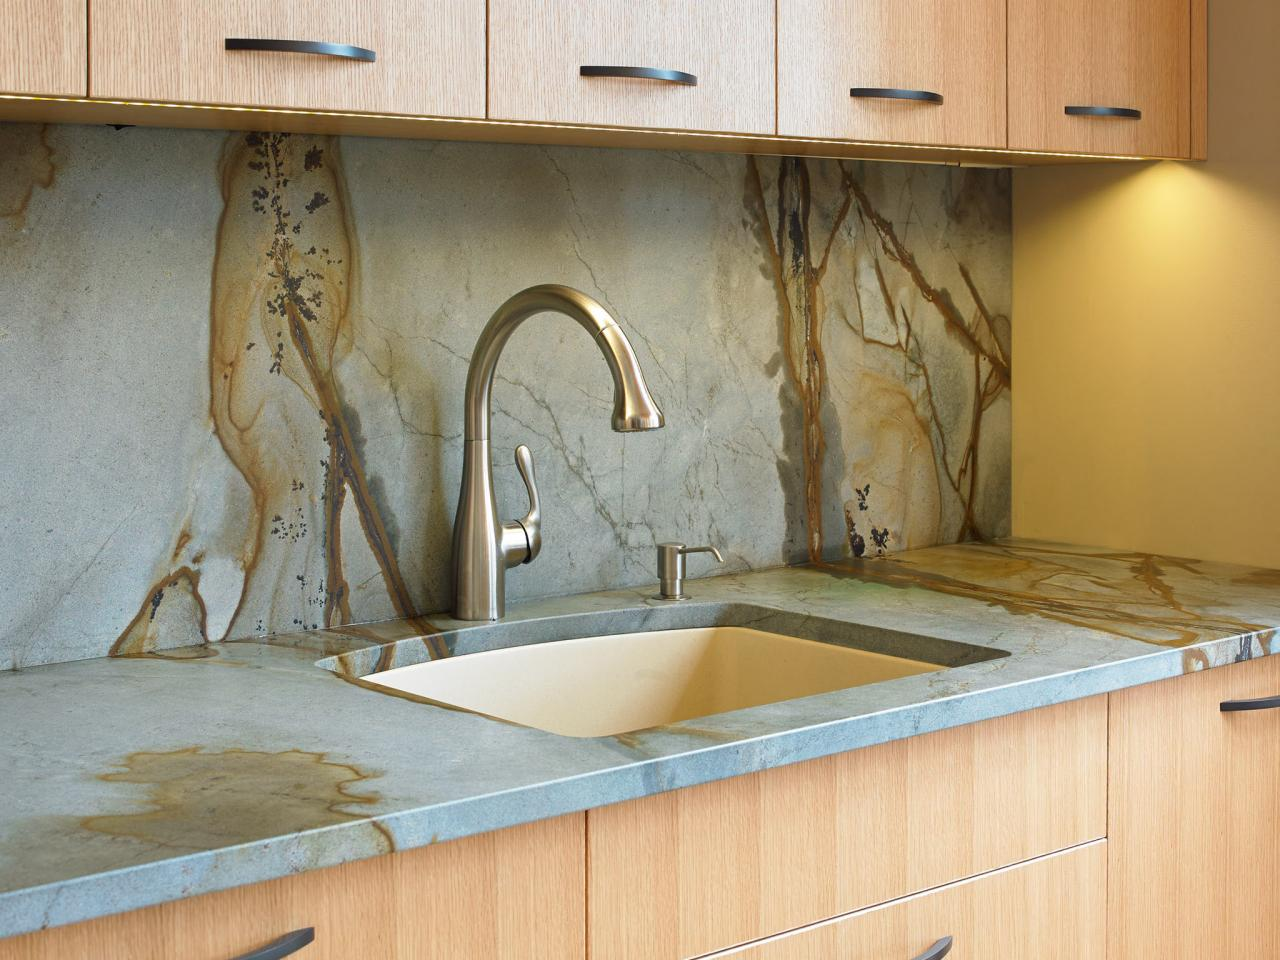 Backsplash ideas for granite countertops hgtv pictures hgtv dailygadgetfo Image collections